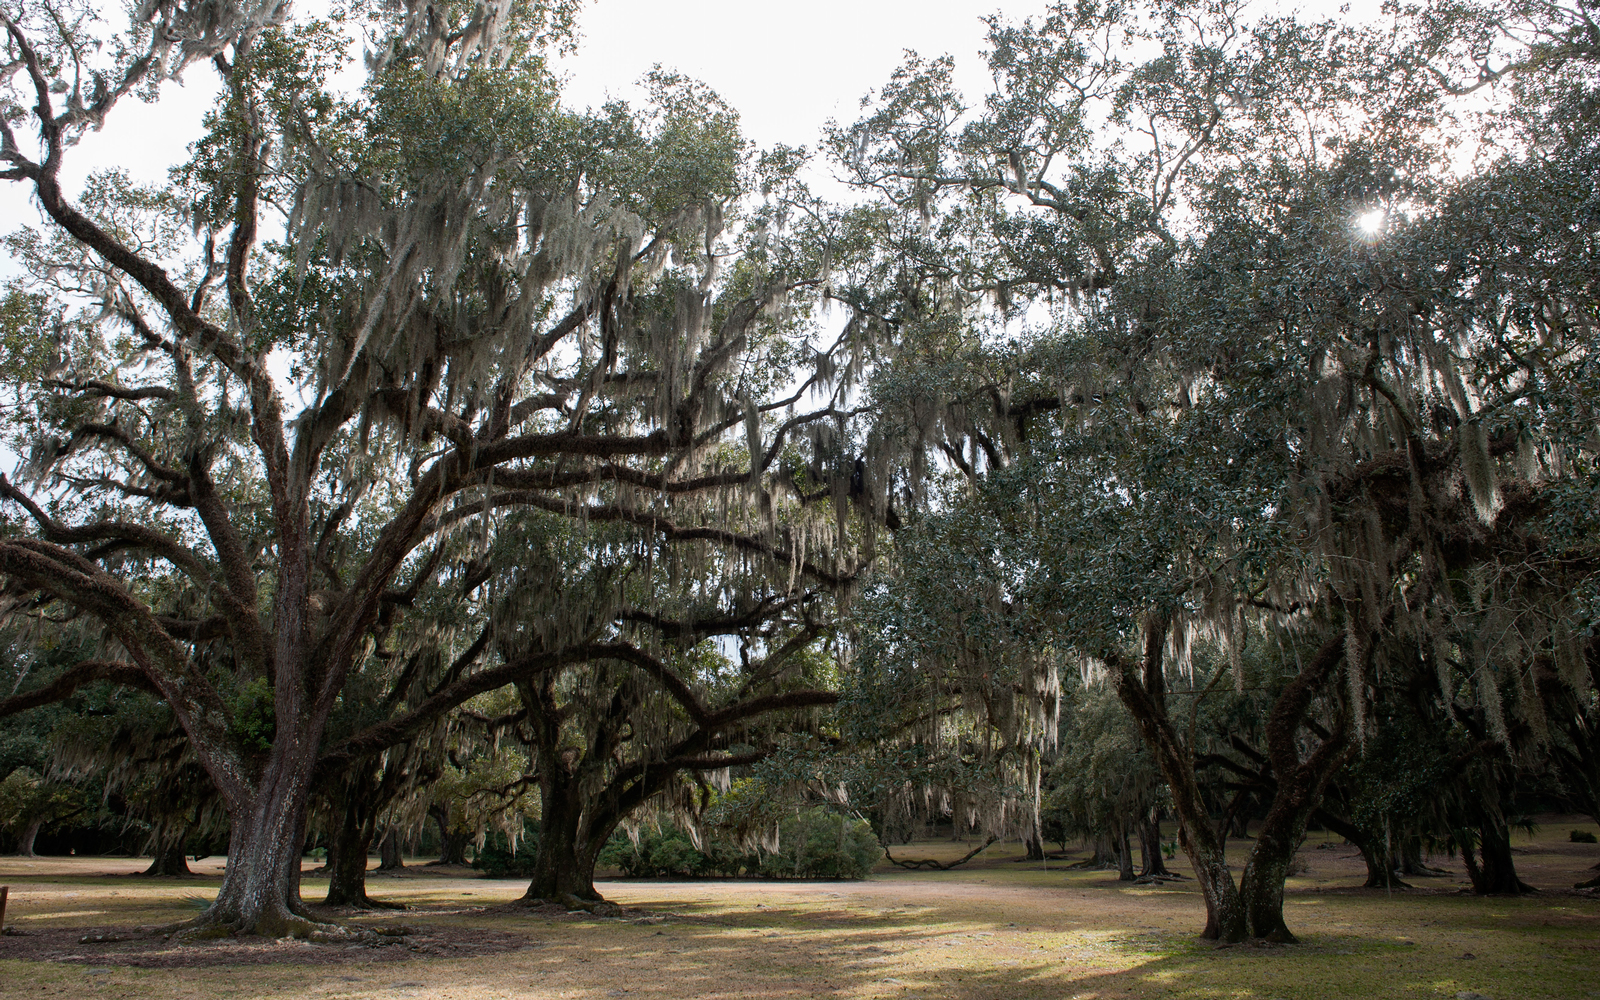 Spanish moss growing on live oak trees, Avery Island, Louisiana